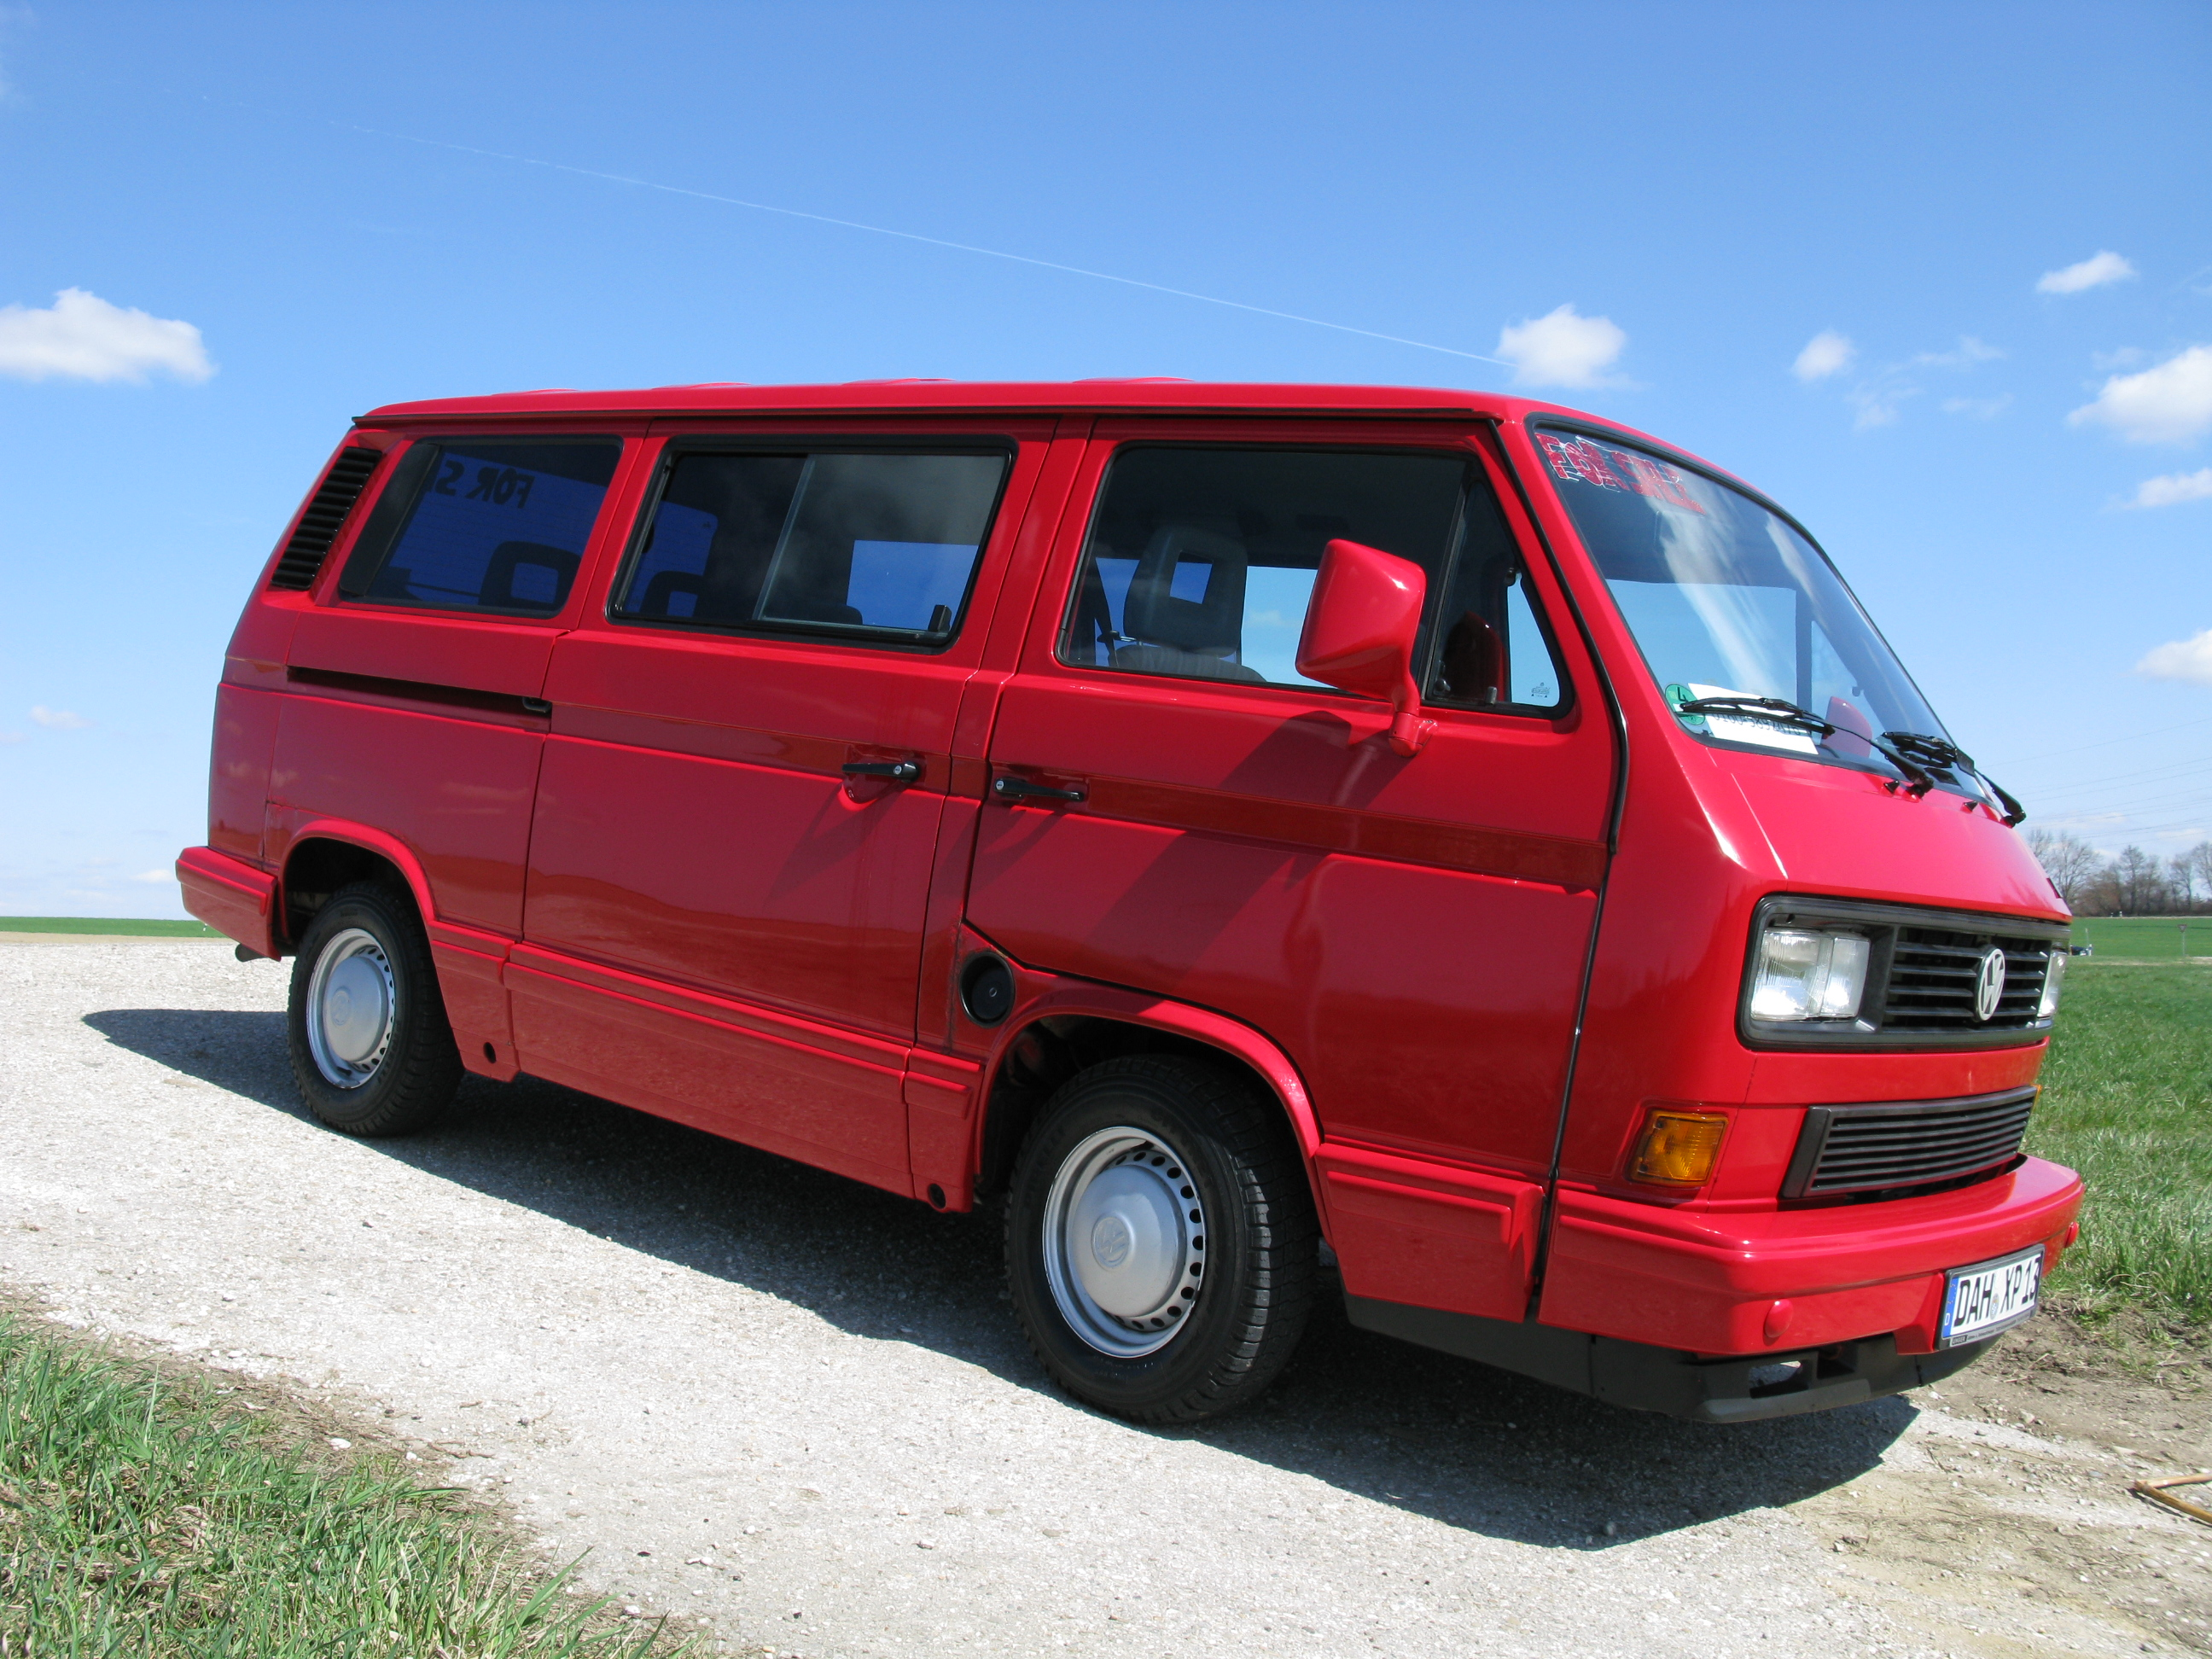 volkswagen t3 bus last limited edition rot wbx wenig kilometer biete. Black Bedroom Furniture Sets. Home Design Ideas